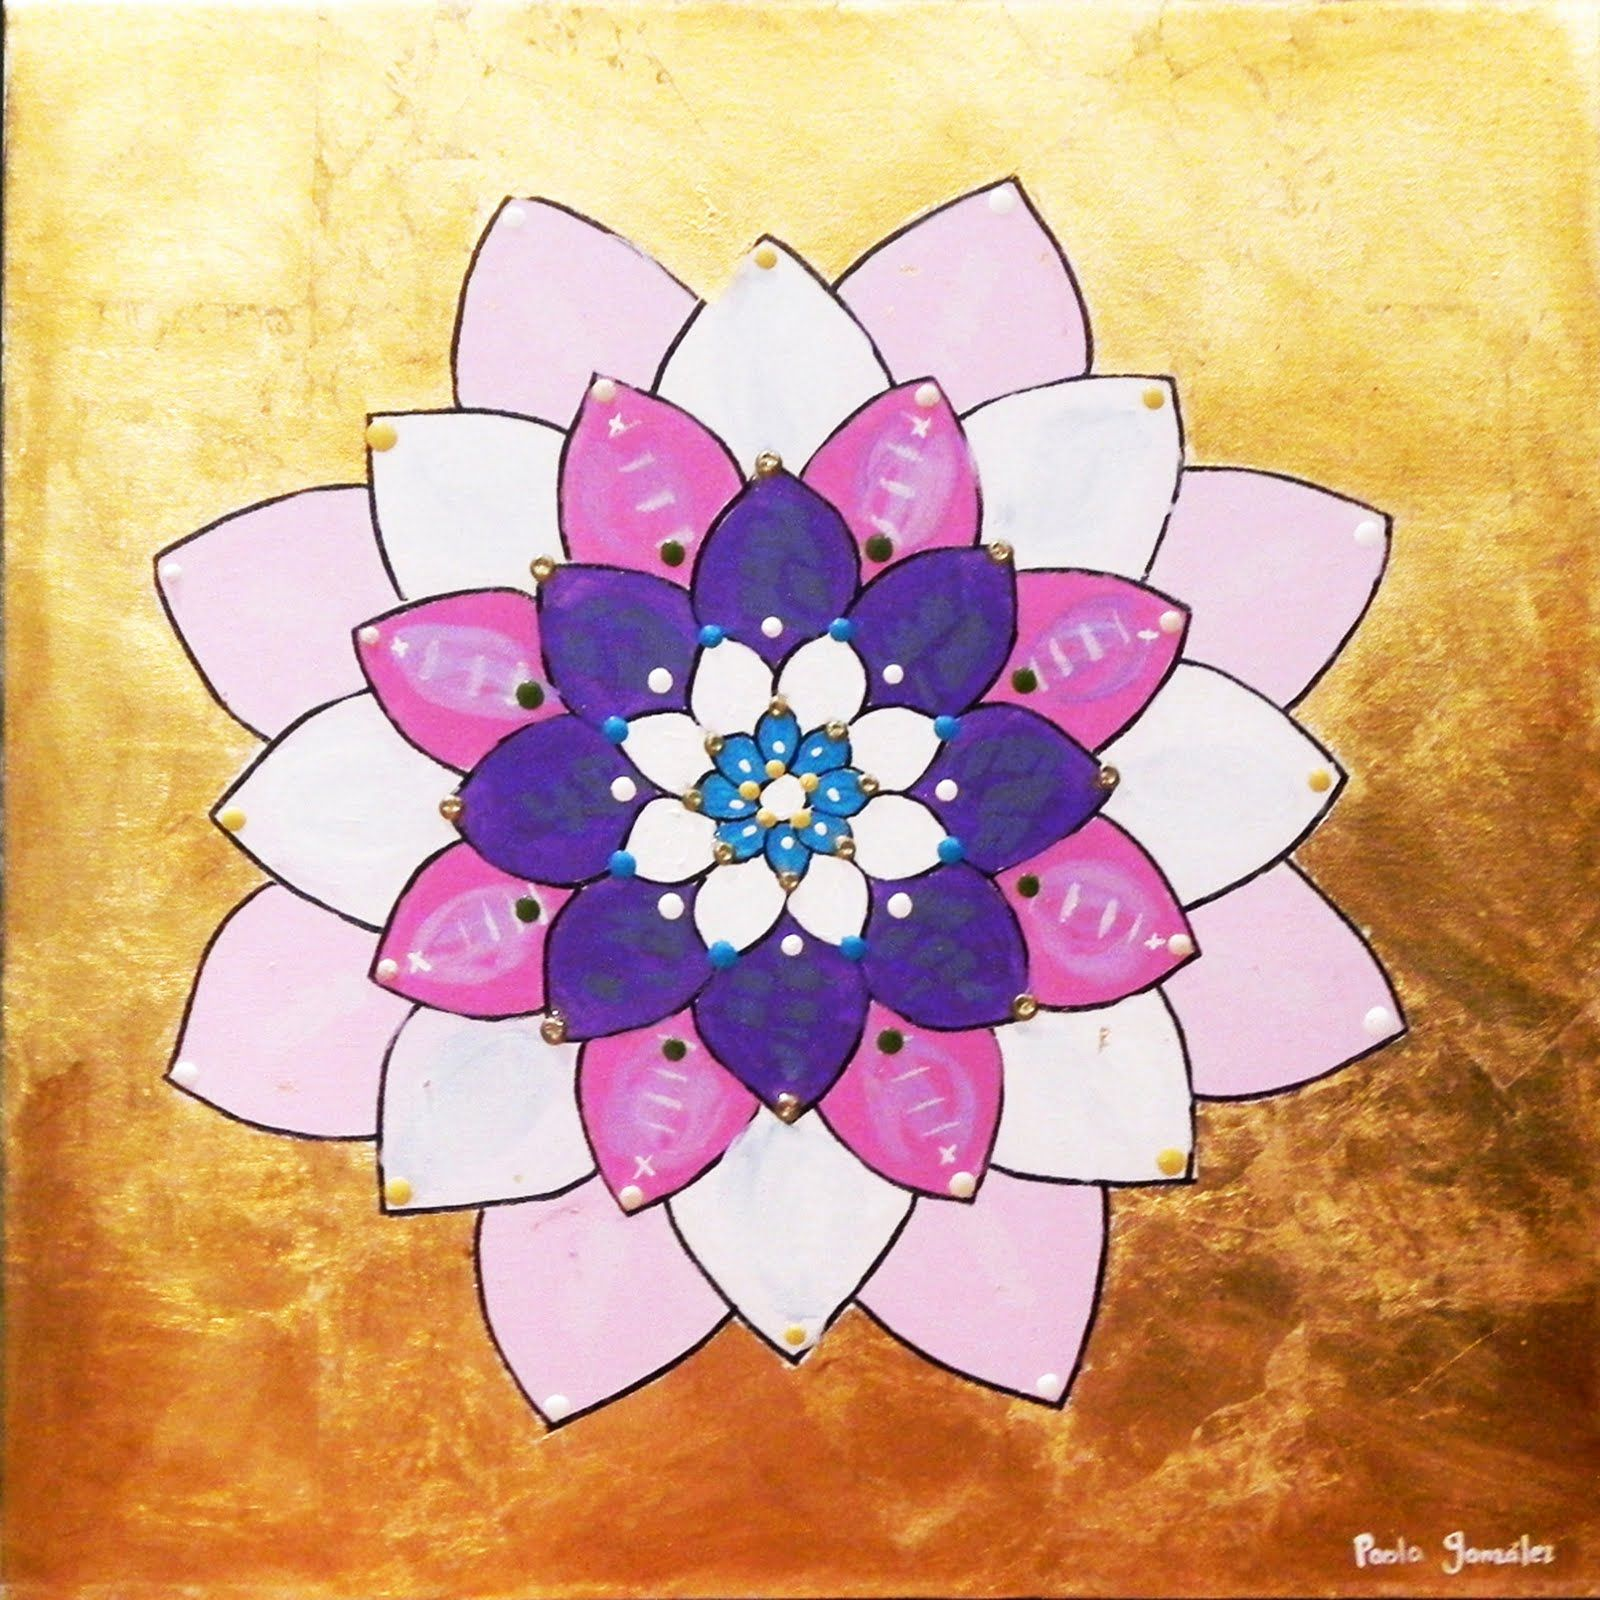 Lotus flower meaning is one of my lotus flowers acrylic over gold lotus flower meaning is one of my lotus flowers acrylic over gold leaf lotus flower izmirmasajfo Image collections